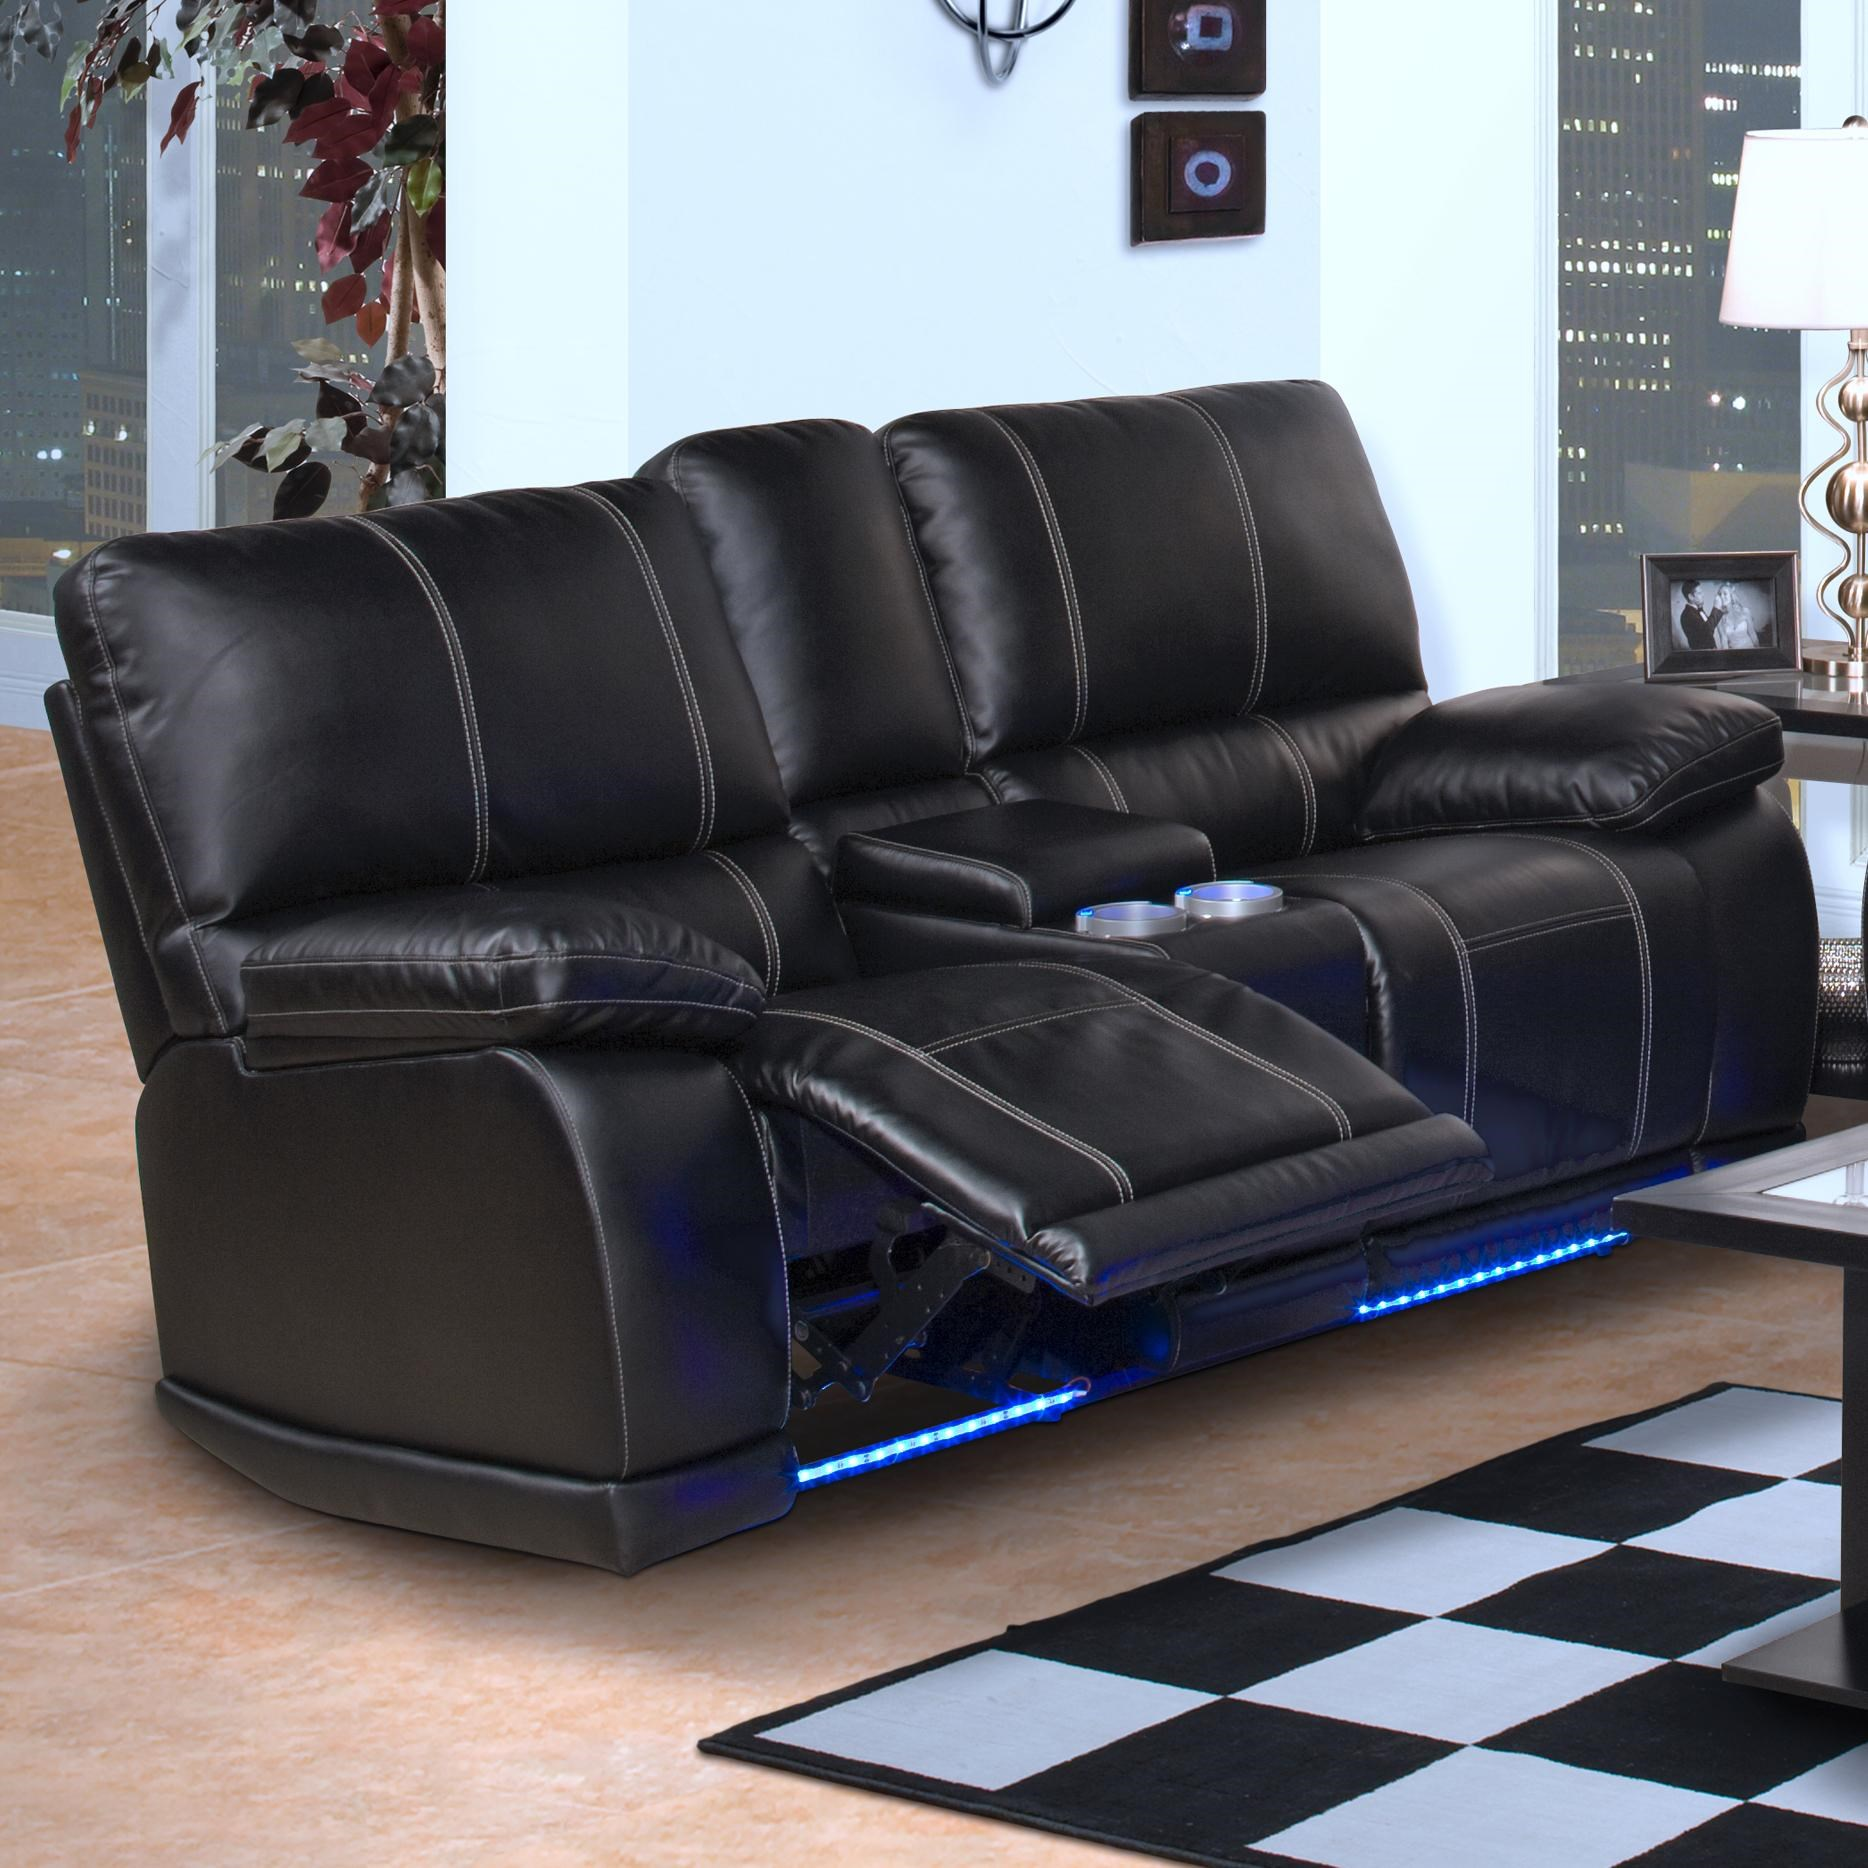 New Classic Electra Contemporary Dual Recliner Console  : electra20mbk20 382 25 mbk b0jpgscalebothampwidth500ampheight500ampfsharpen25ampdown from www.dunkandbright.com size 500 x 500 jpeg 56kB